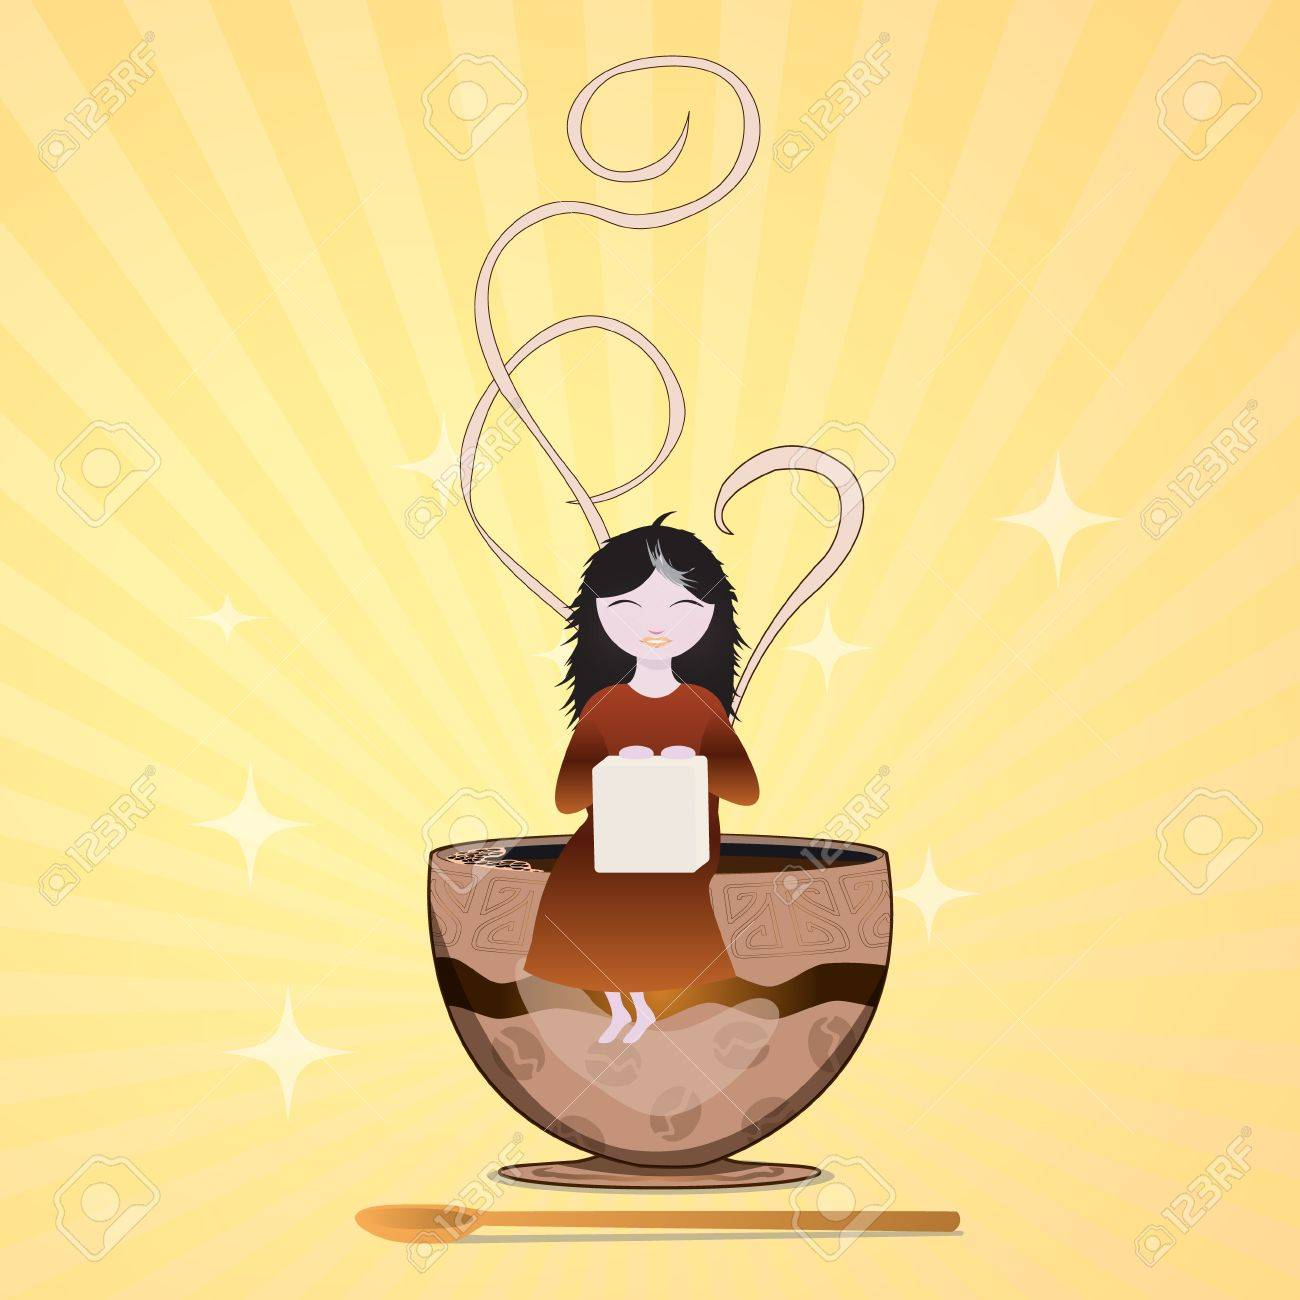 the girl with a piece of sugar goes to a cup Stock Vector - 18539933